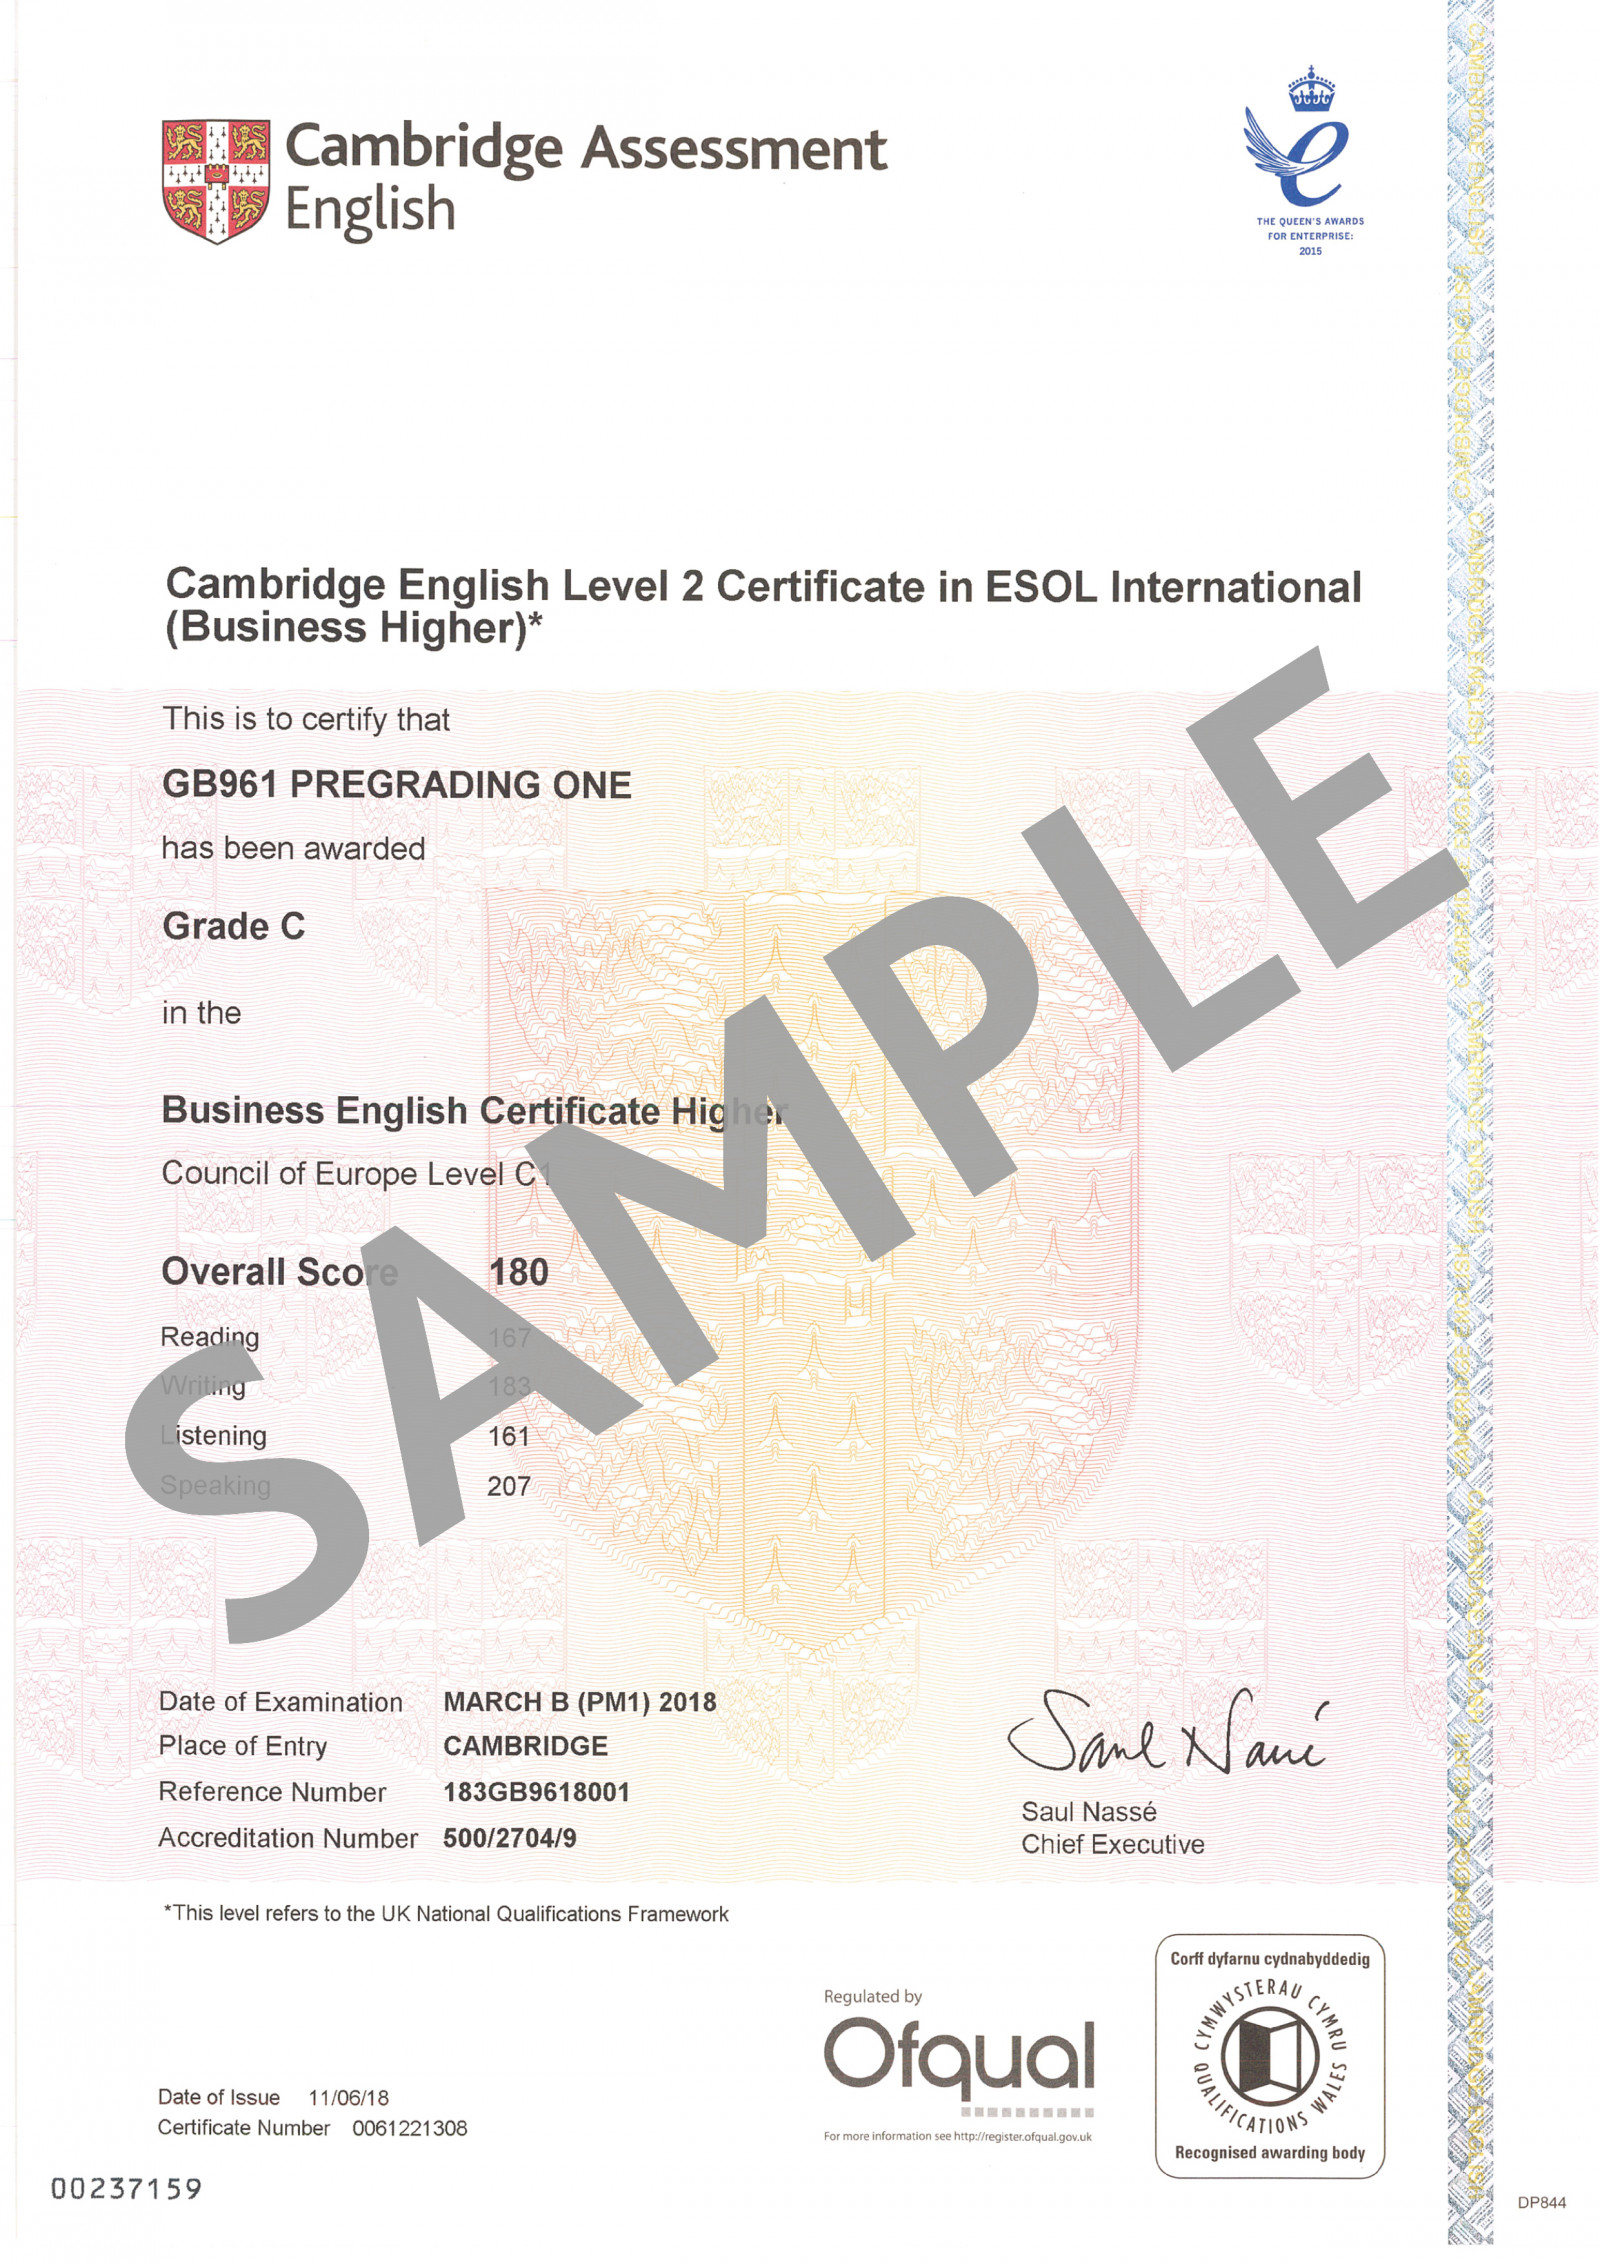 Cambridge Assessment English C2 Business Higher certificate